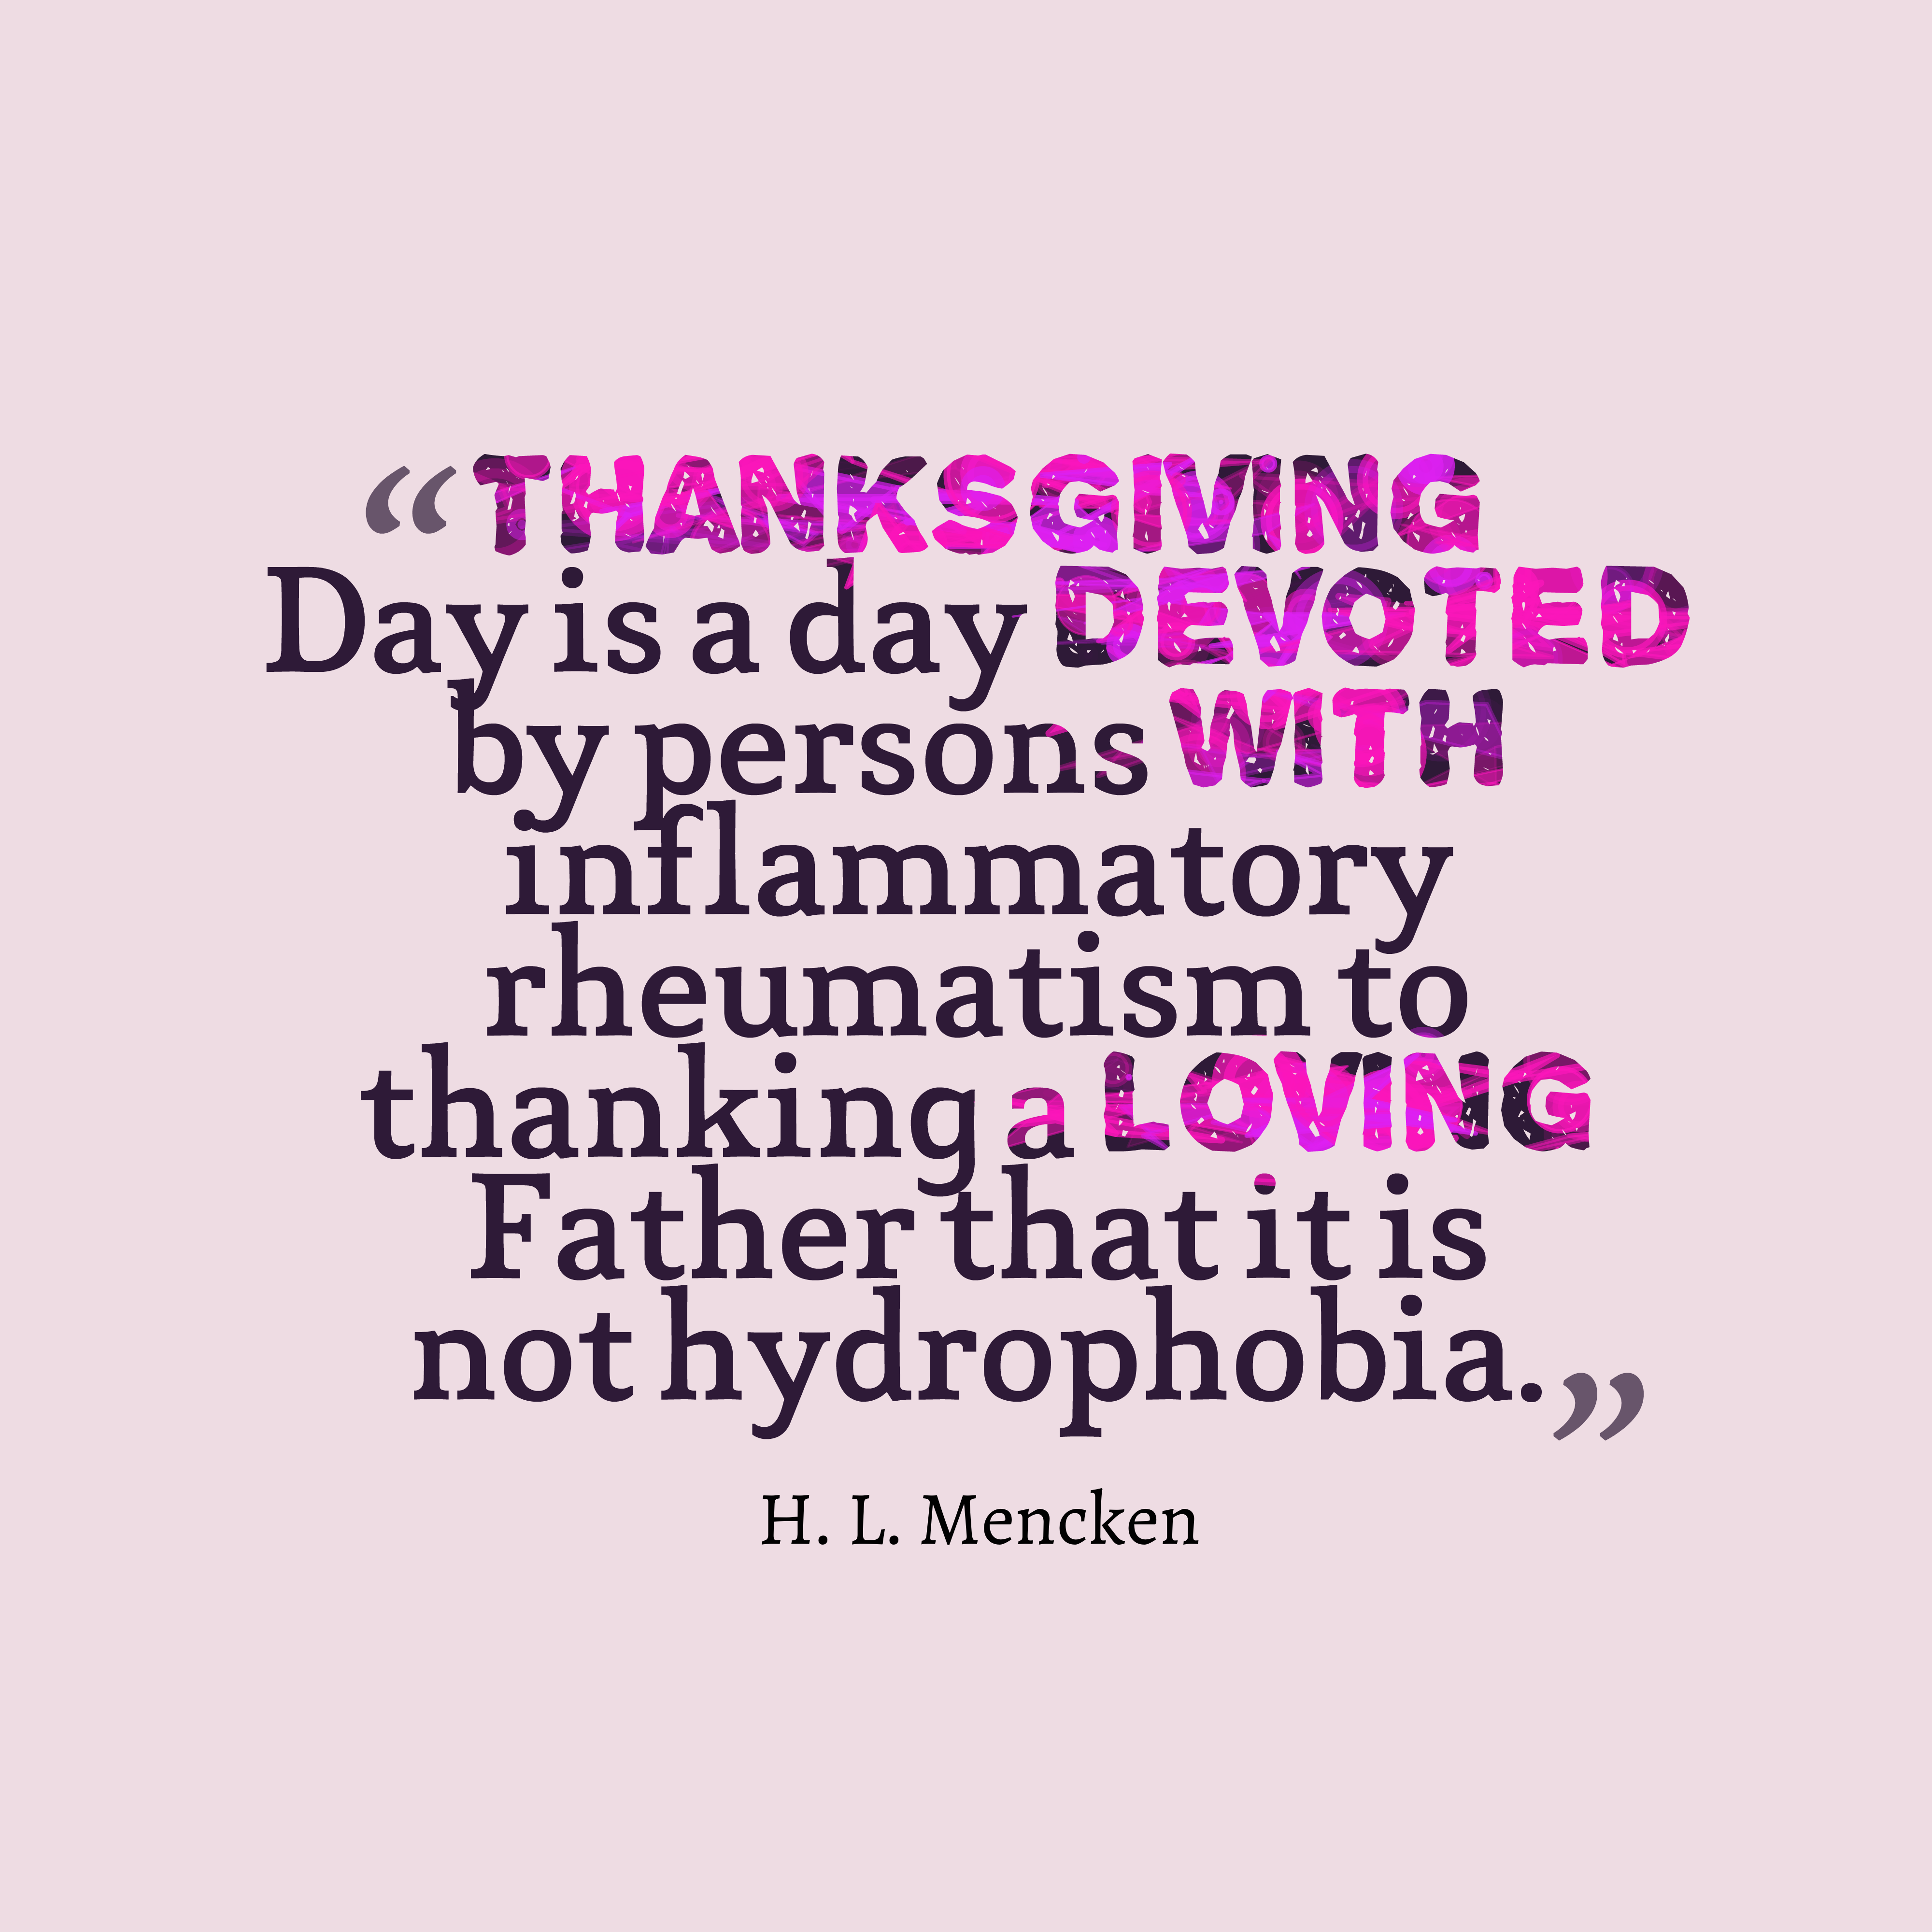 Quotes image of Thanksgiving Day is a day devoted by persons with inflammatory rheumatism to thanking a loving Father that it is not hydrophobia.